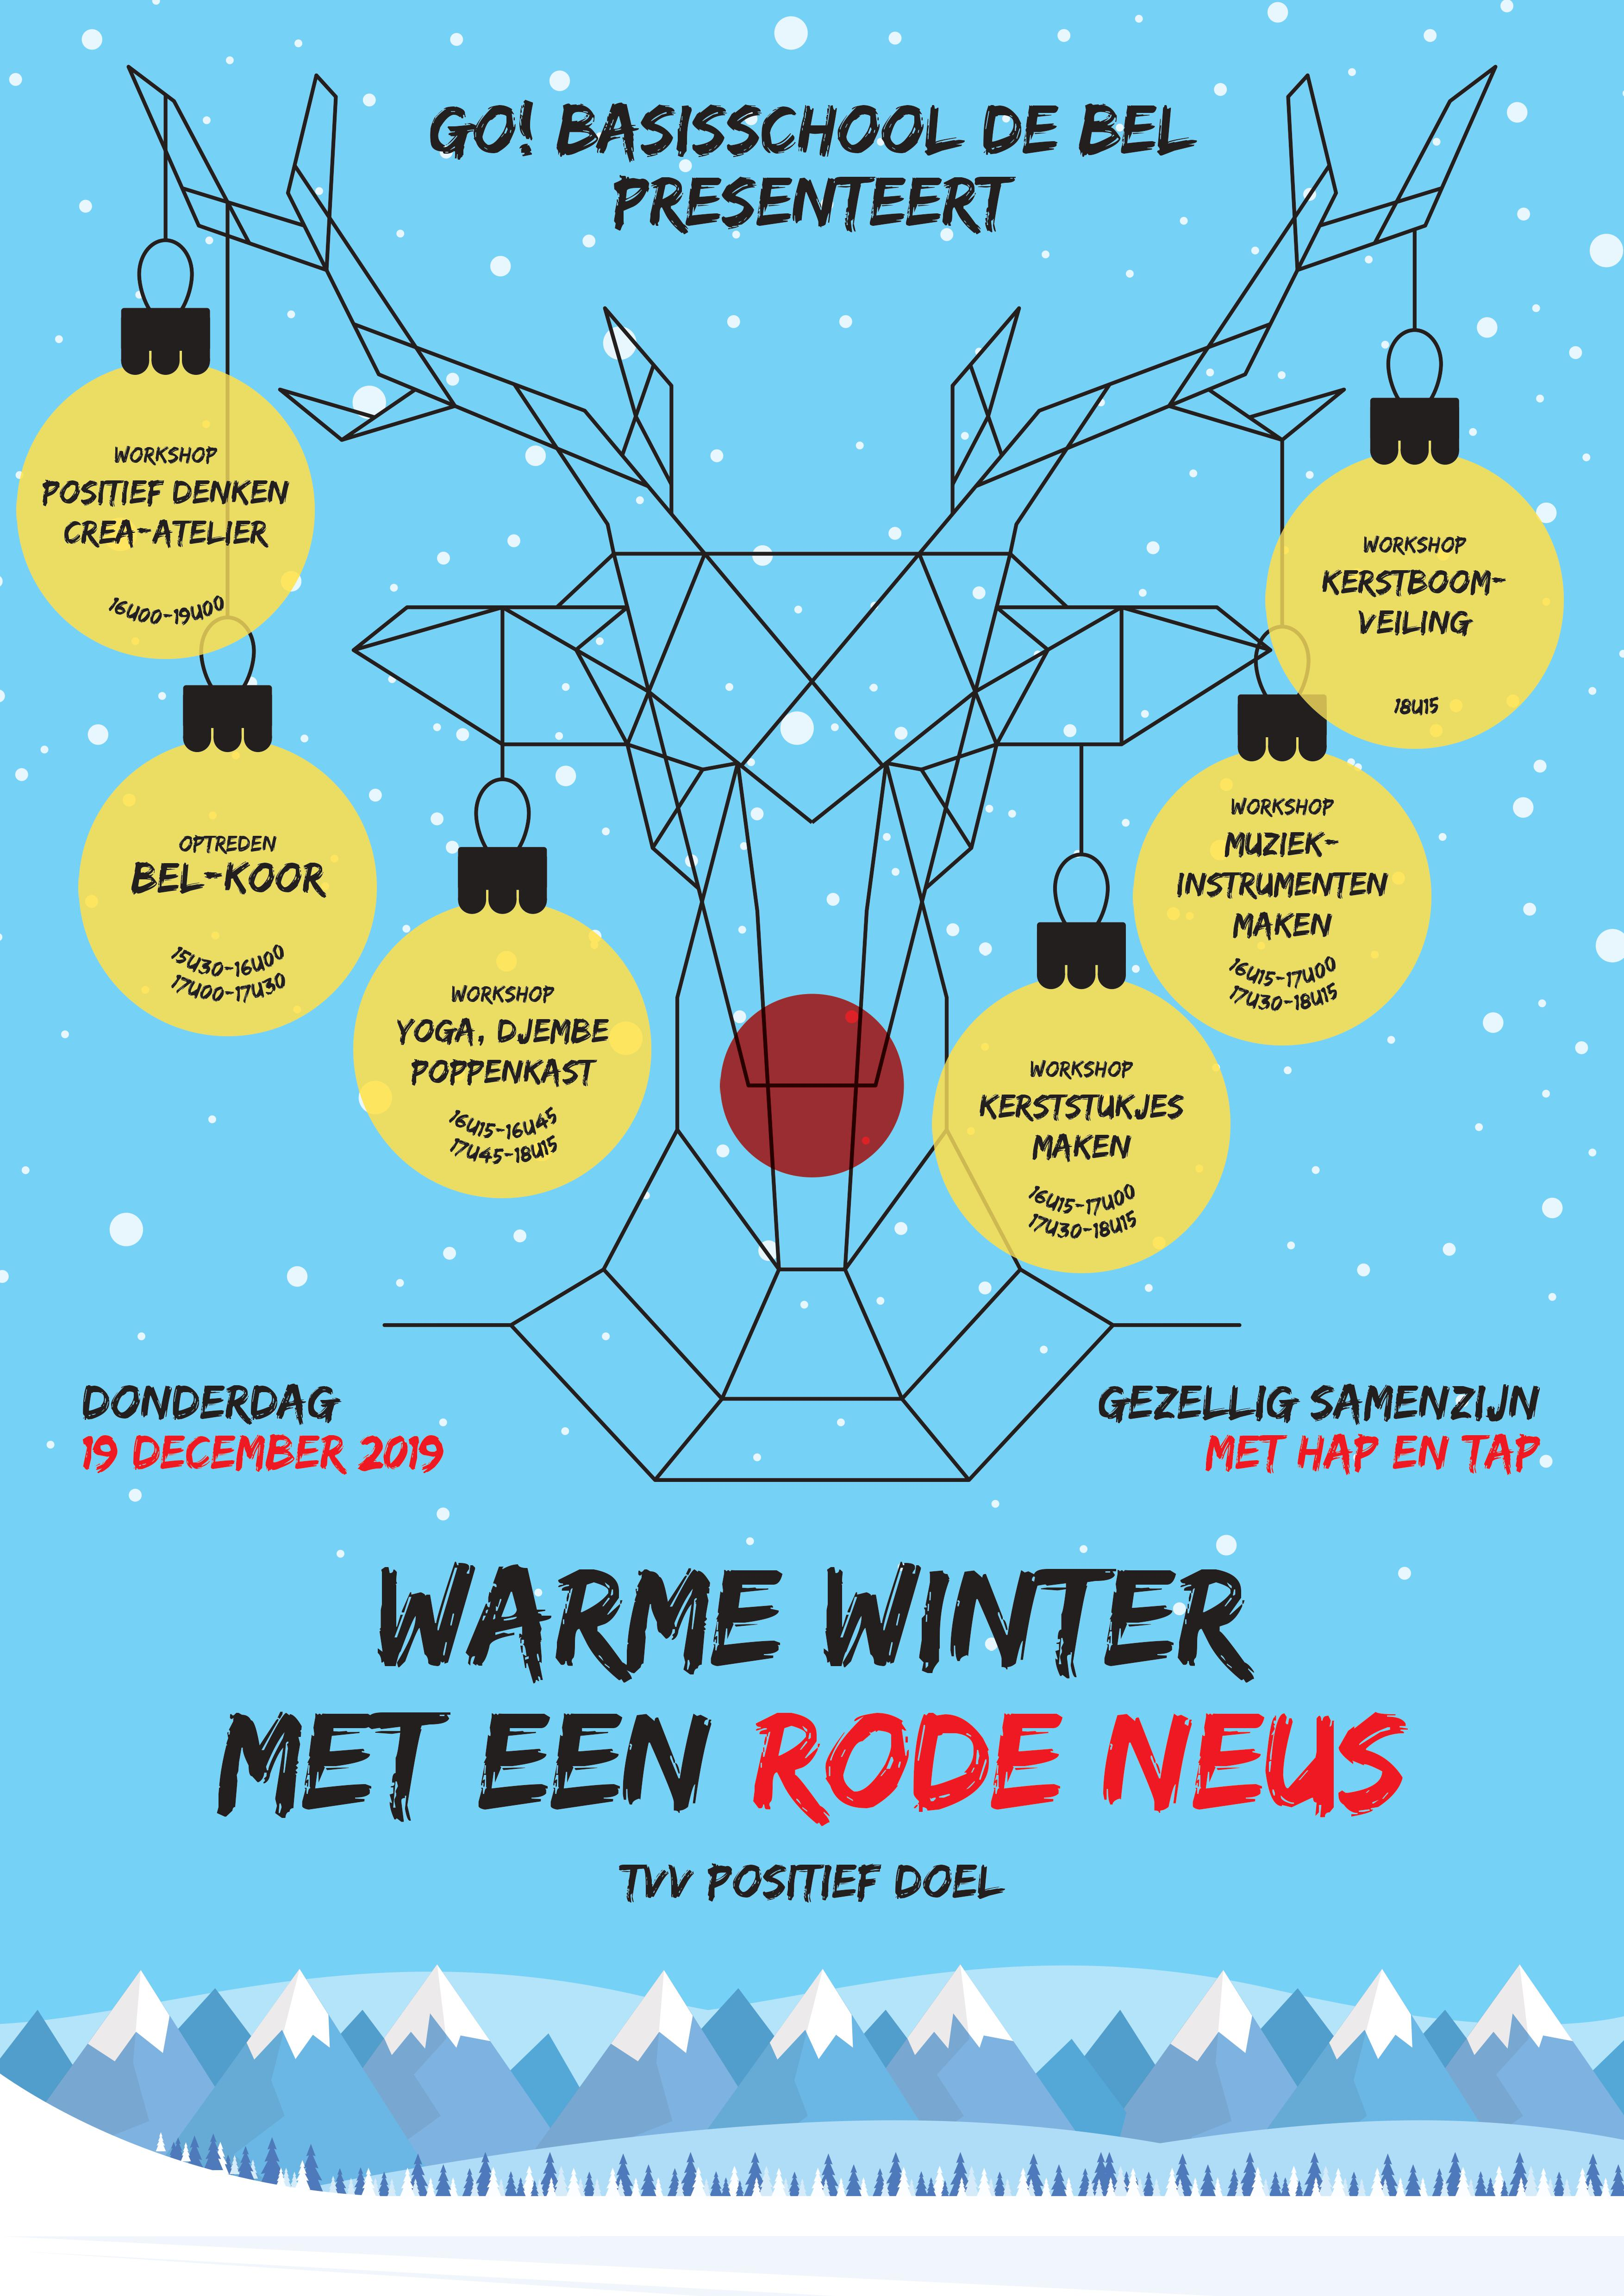 Warme winter met een rode neus